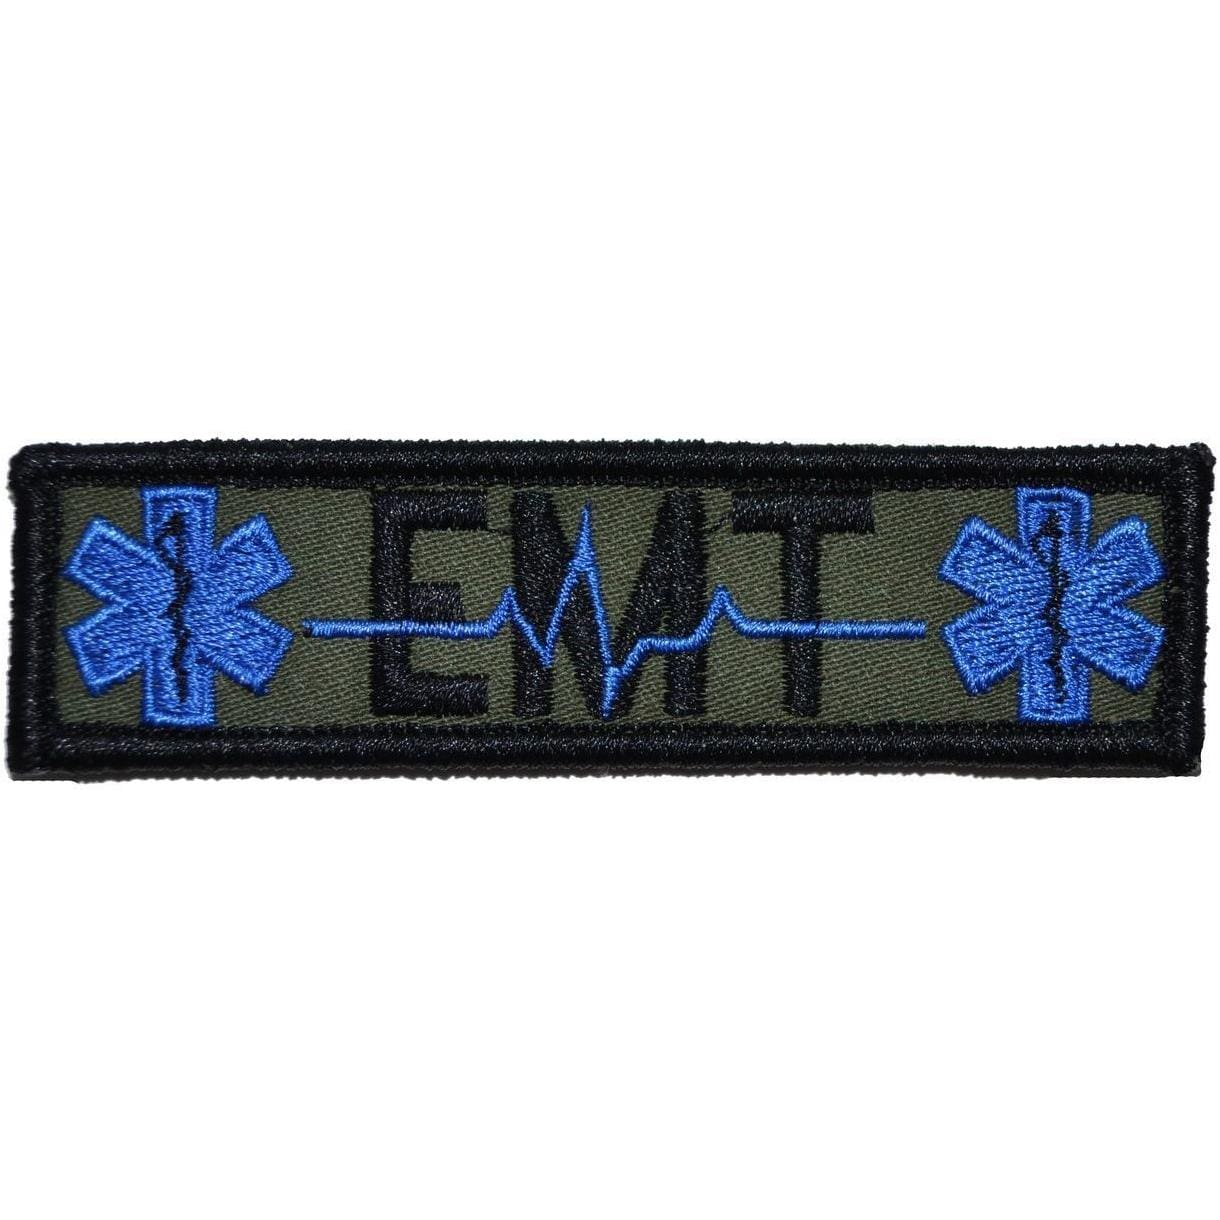 Tactical Gear Junkie Patches Olive Drab EMT Heartbeat and Stars of Life - 1x3.75 Patch